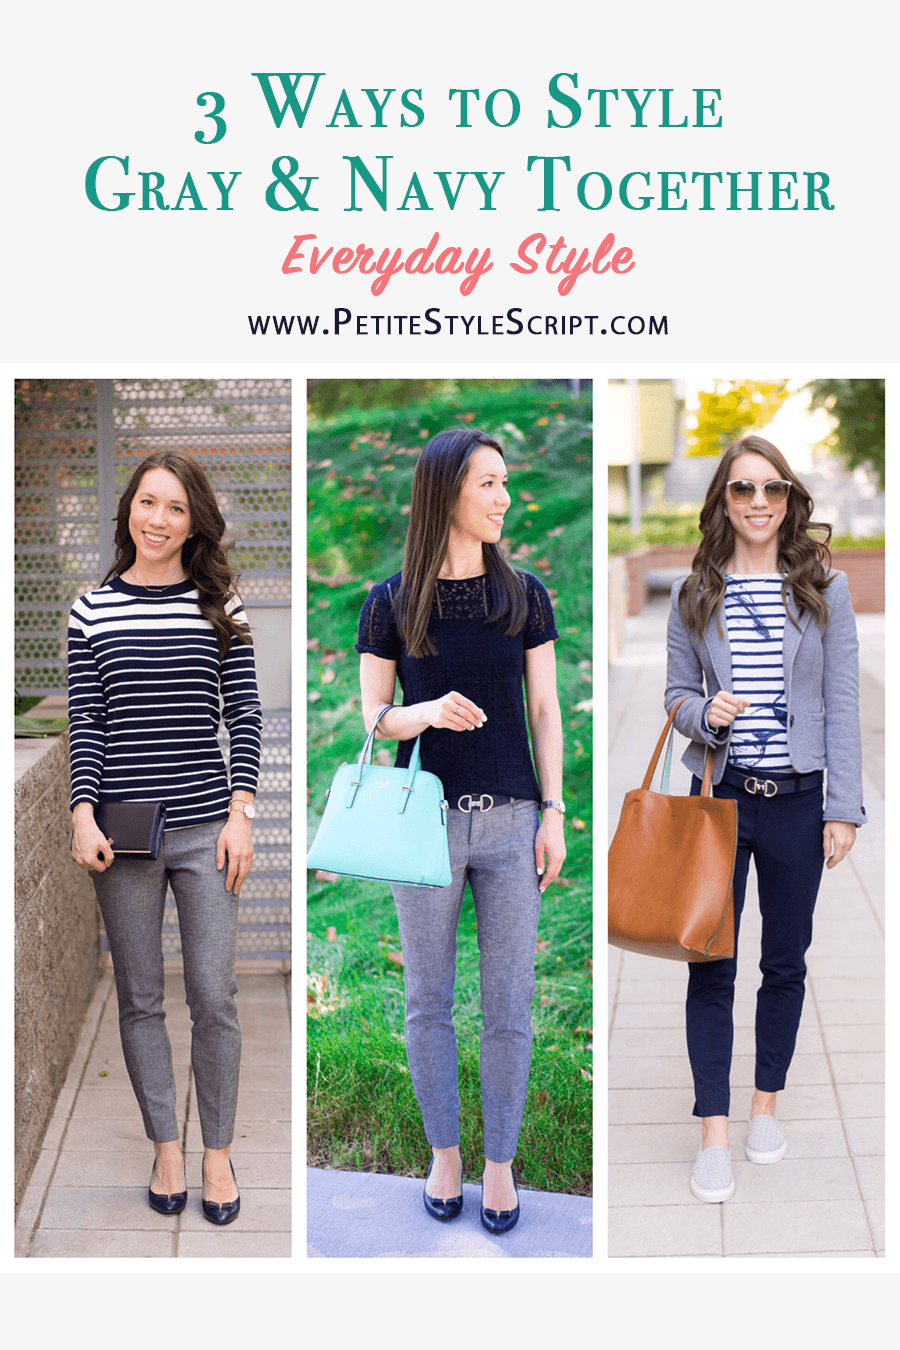 fd8e7eb1691 Learn three ways to style gray and navy together with these outfit ideas  and capsule wardrobe inspiration. Plus